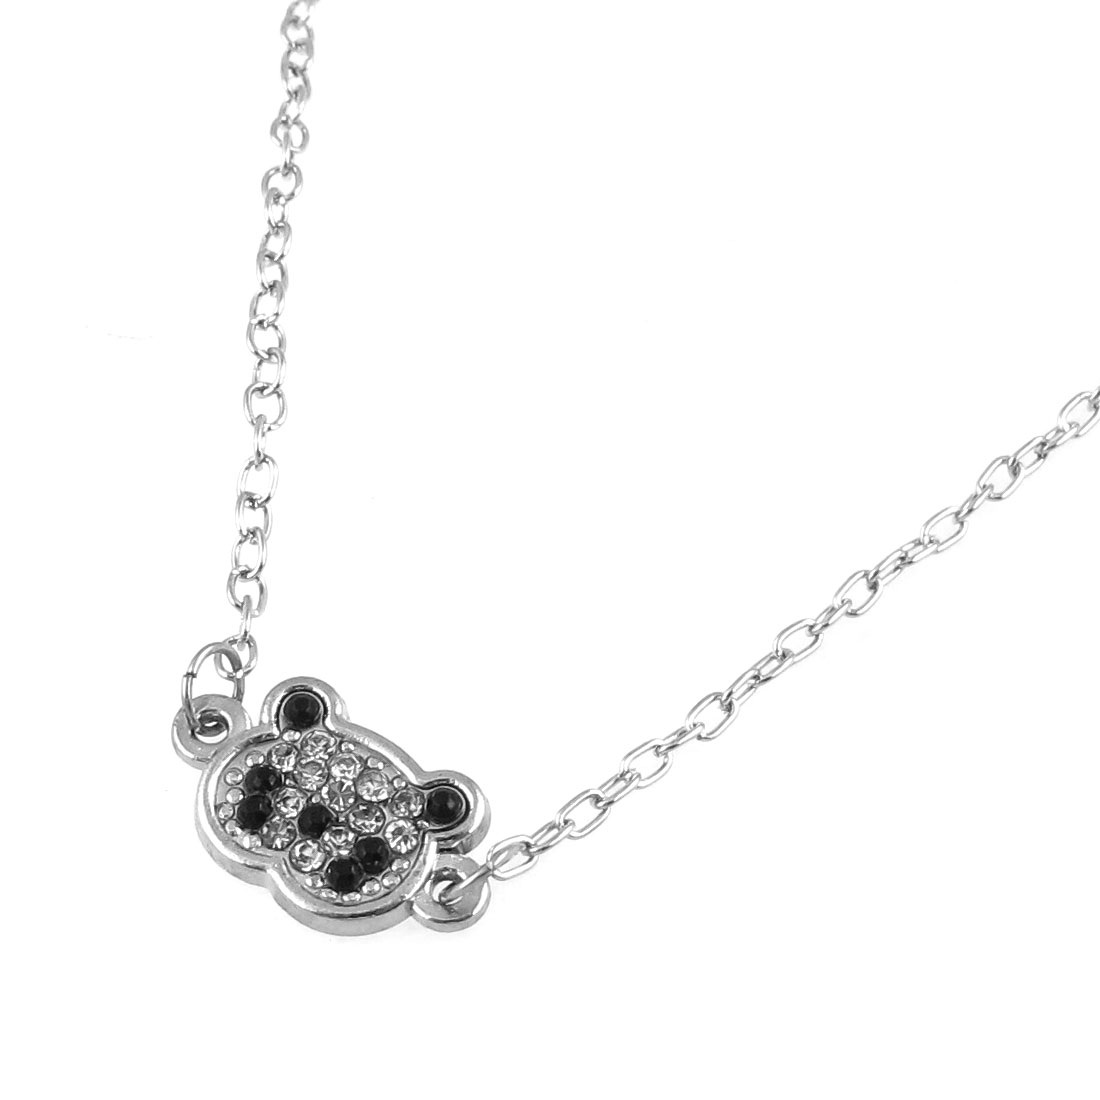 Girl Metal Panda Shape Pendant Cute Decoration Necklace Chain Silver Tone